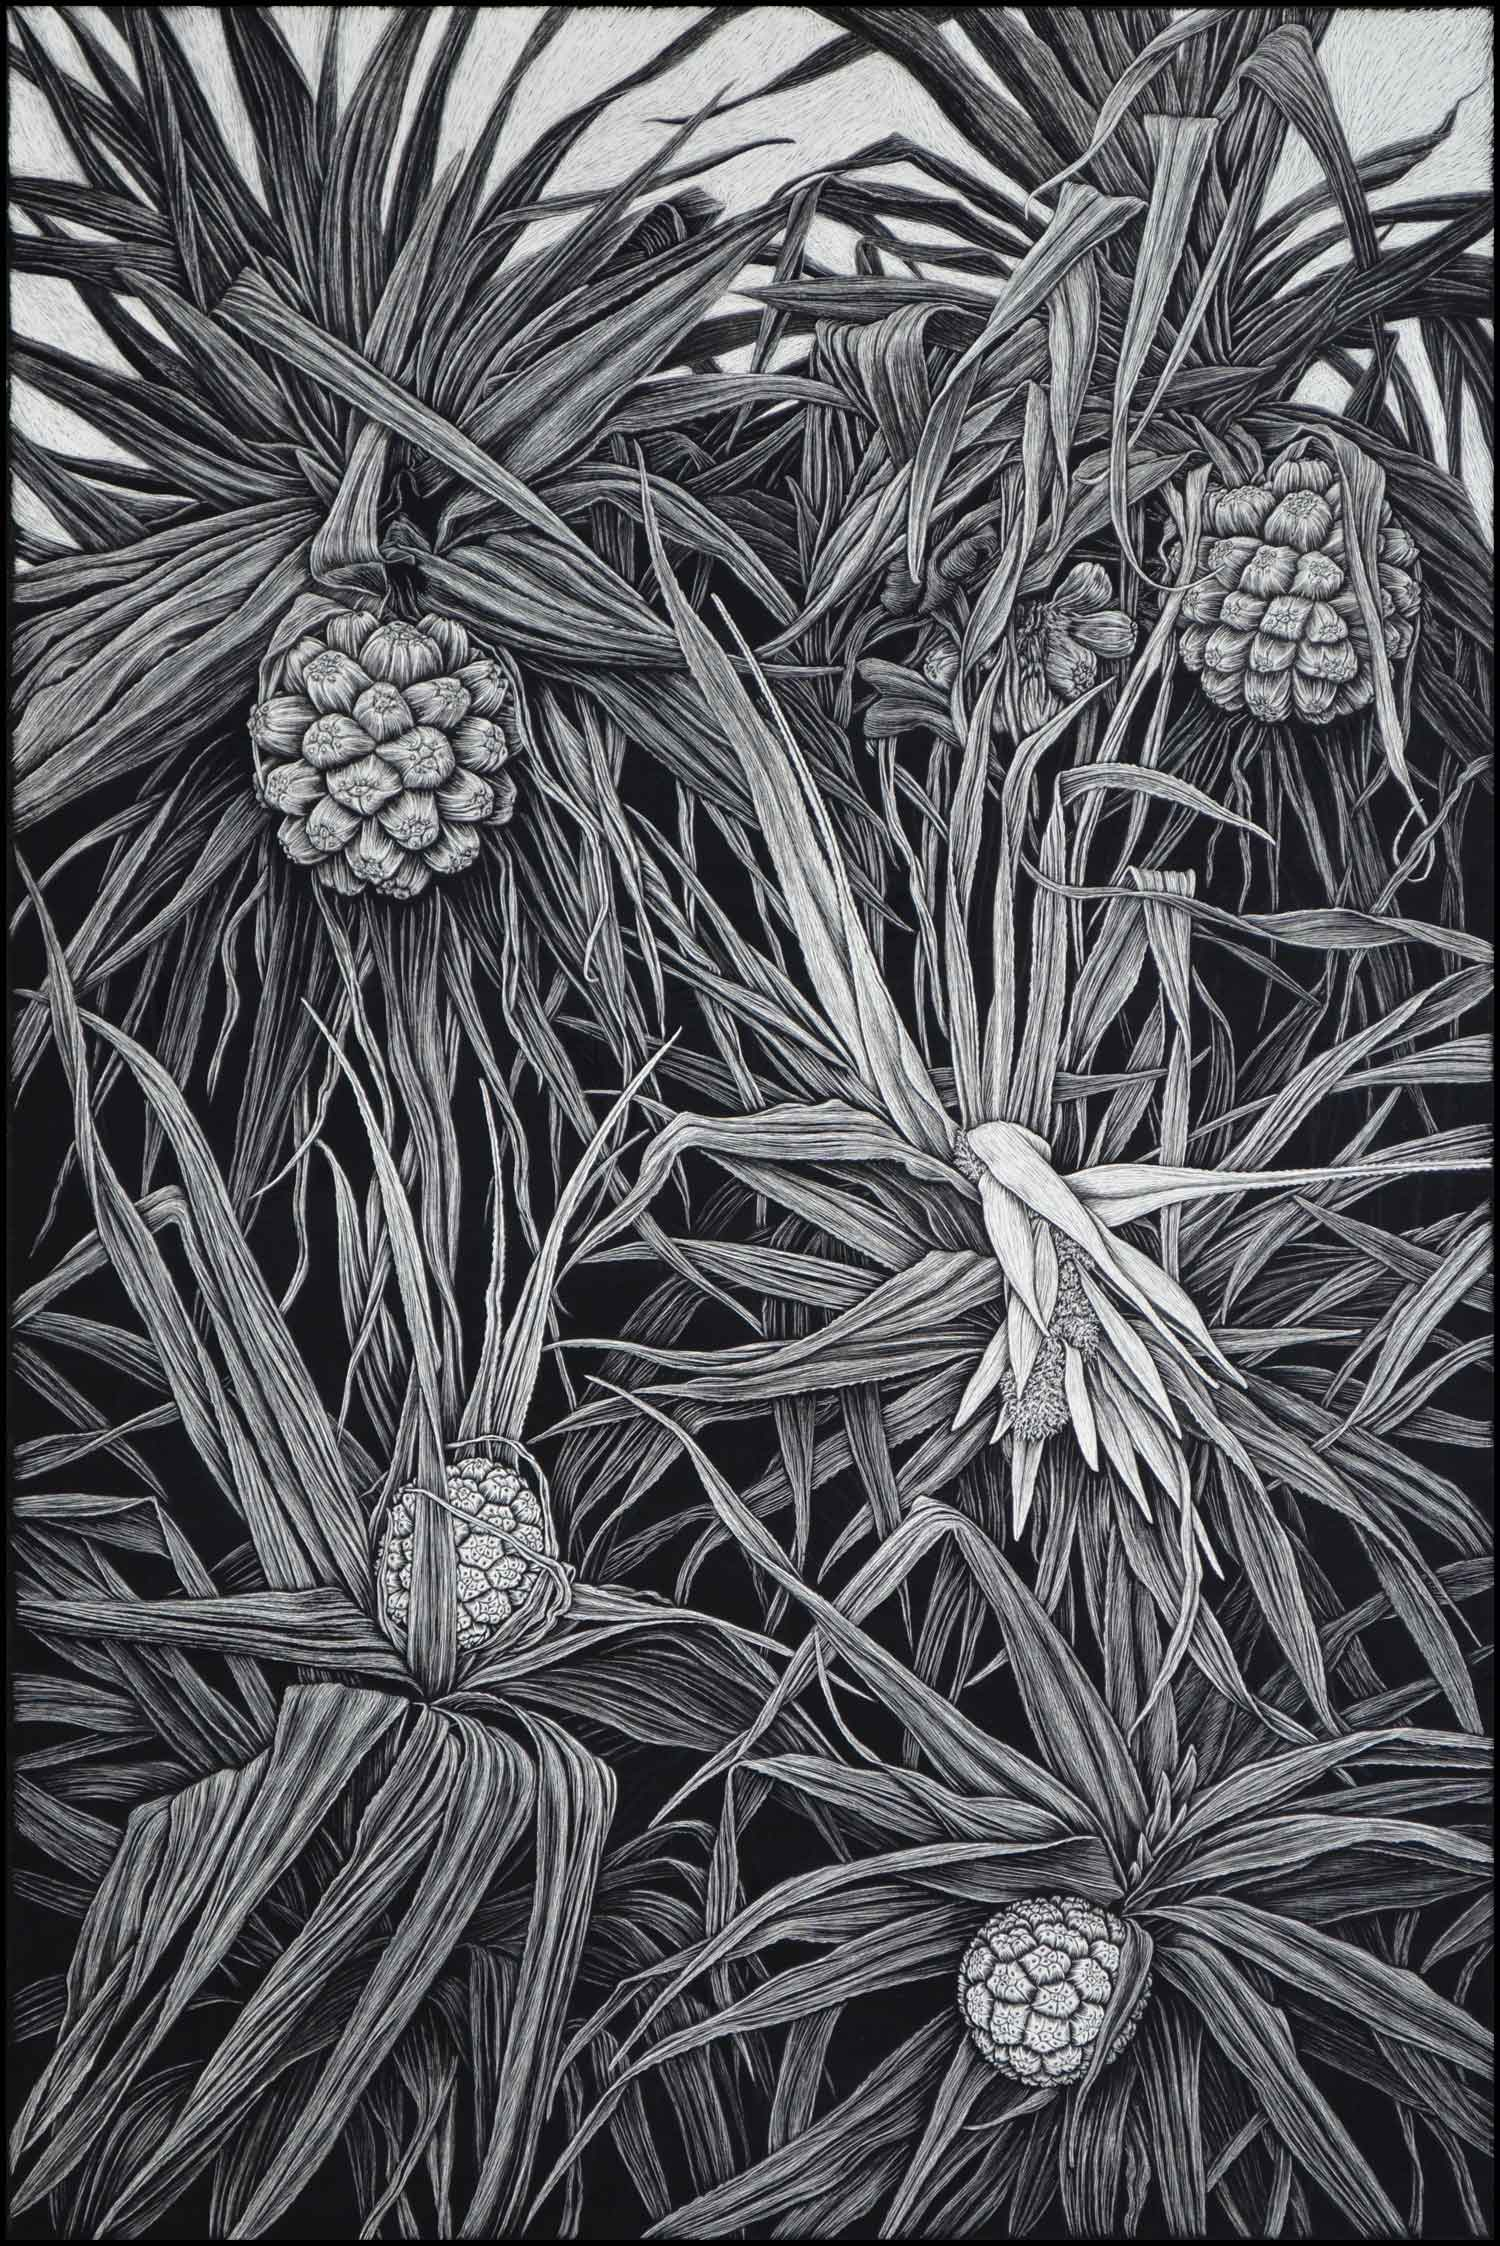 Pandanus in Flower (black & white version)  91.5 x 61 cm,  Edition of 50  PIGMENT ON COTTON RAG PAPER  $1,650